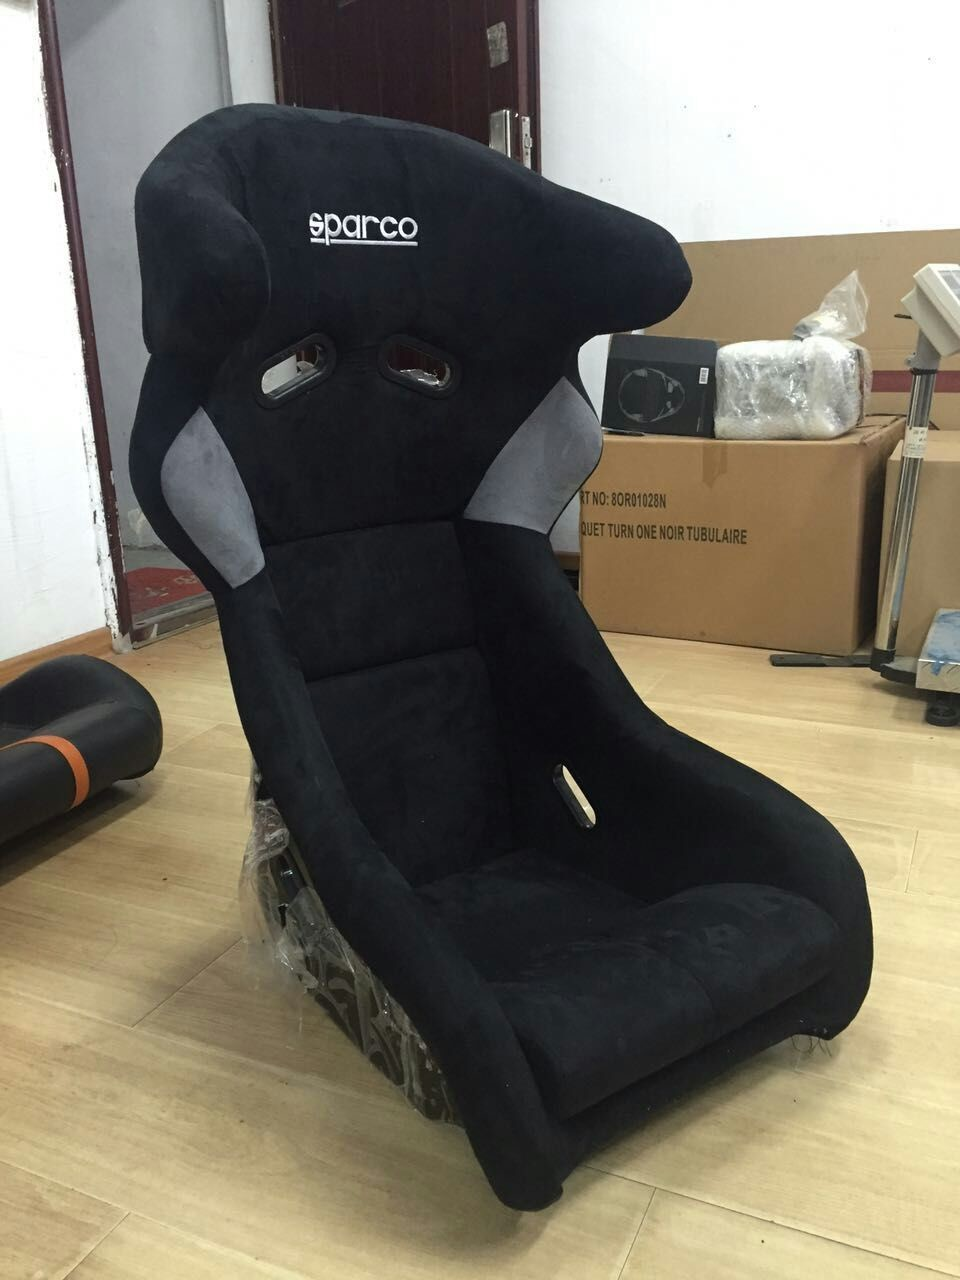 JBR1060 suede Sport Racing Seats With Adjuster / Slider Car Seats